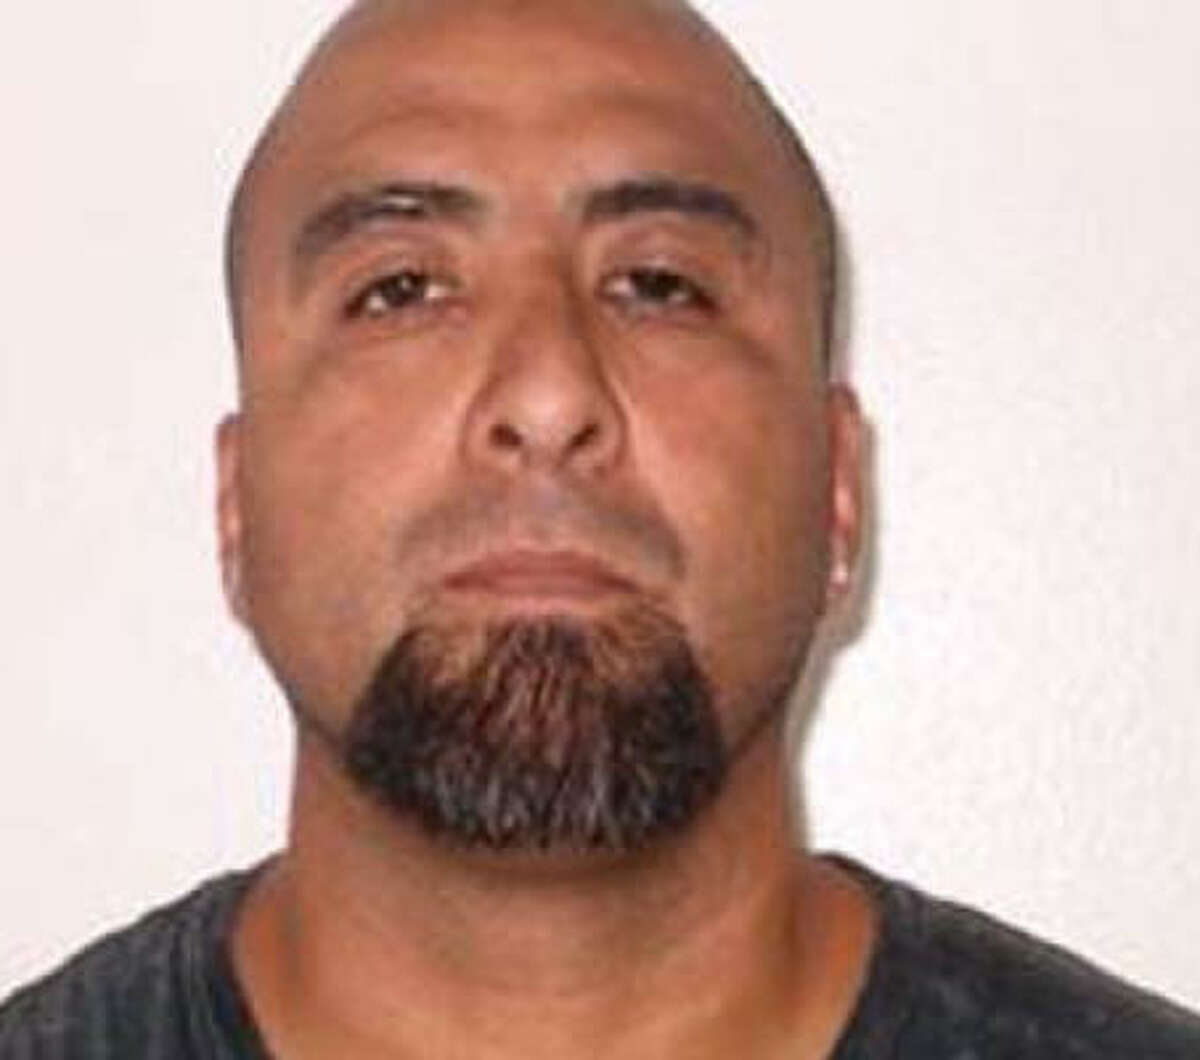 DPS is searching for high-risk sex offender Timothy Rosales Jr., who escaped from a Houston halfway house Monday night. He is considered armed and dangerous.